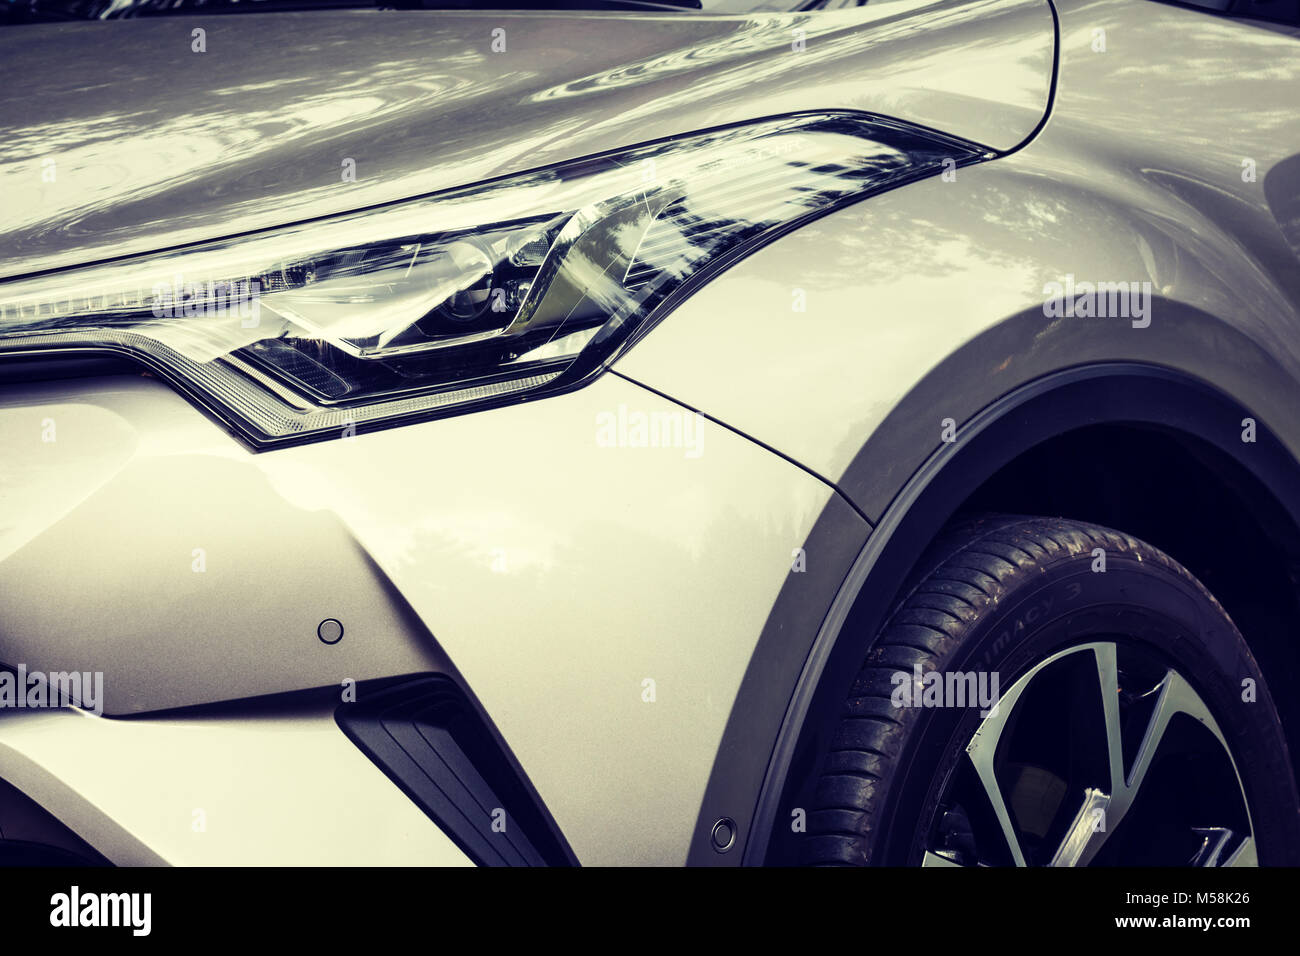 Concept shot of headlamp and part of modern crossover car - Toyota CH-R. Stock Photo